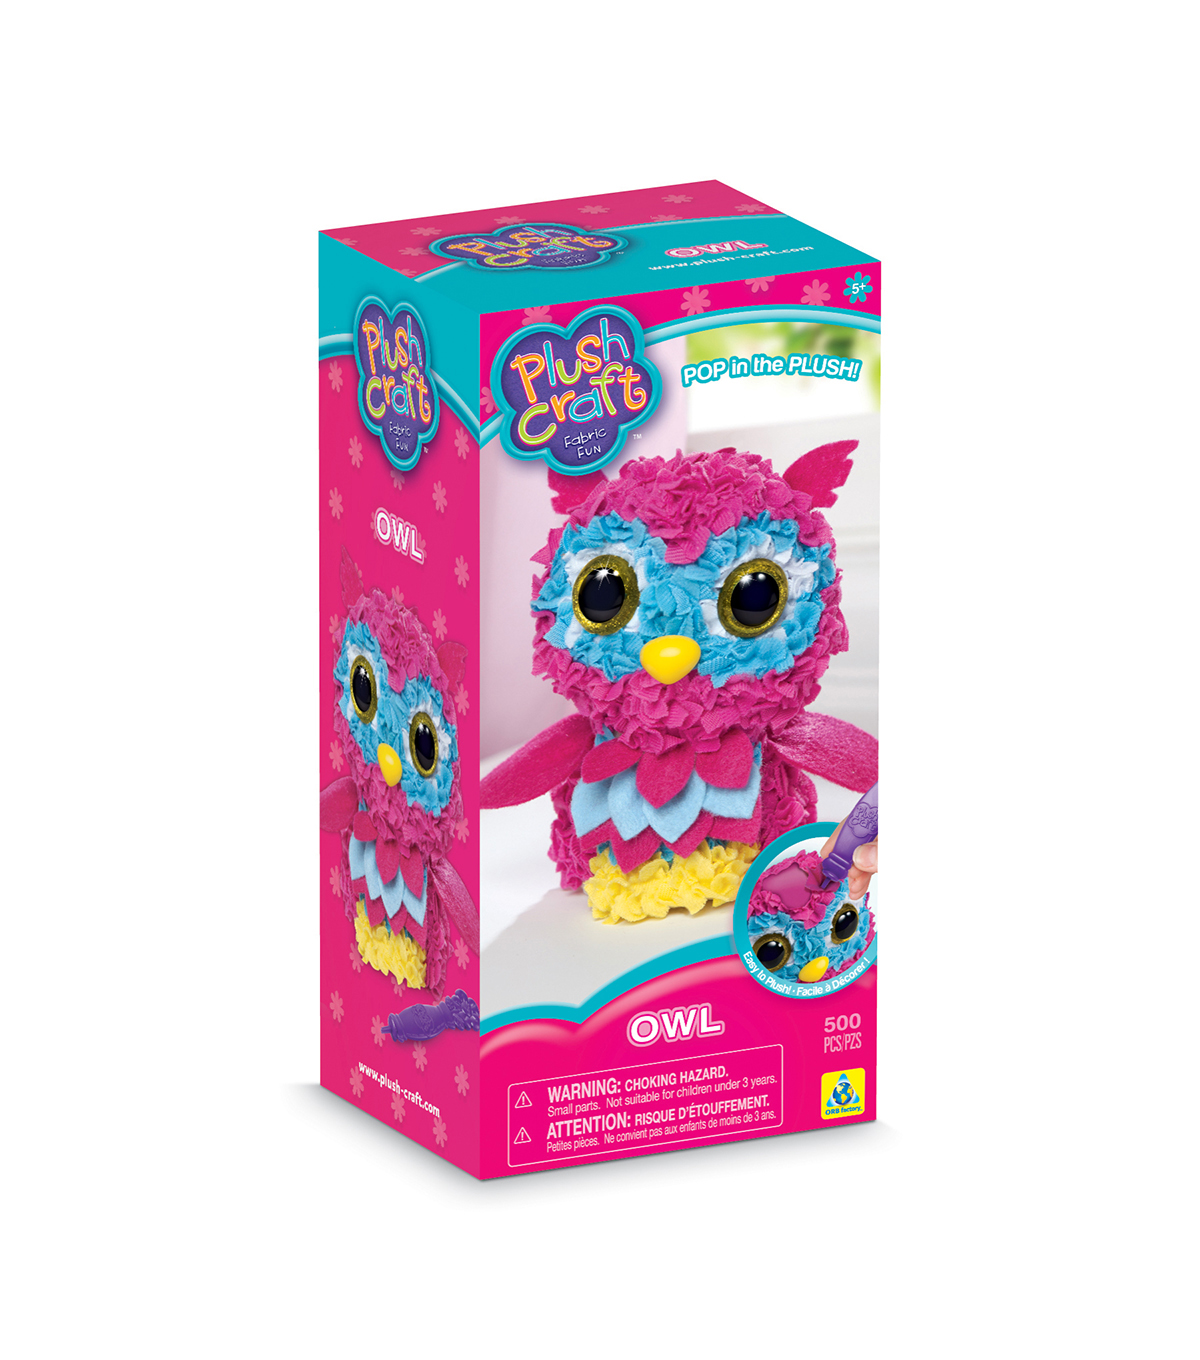 PlushCraft 3D Plush Owl Craft Kit